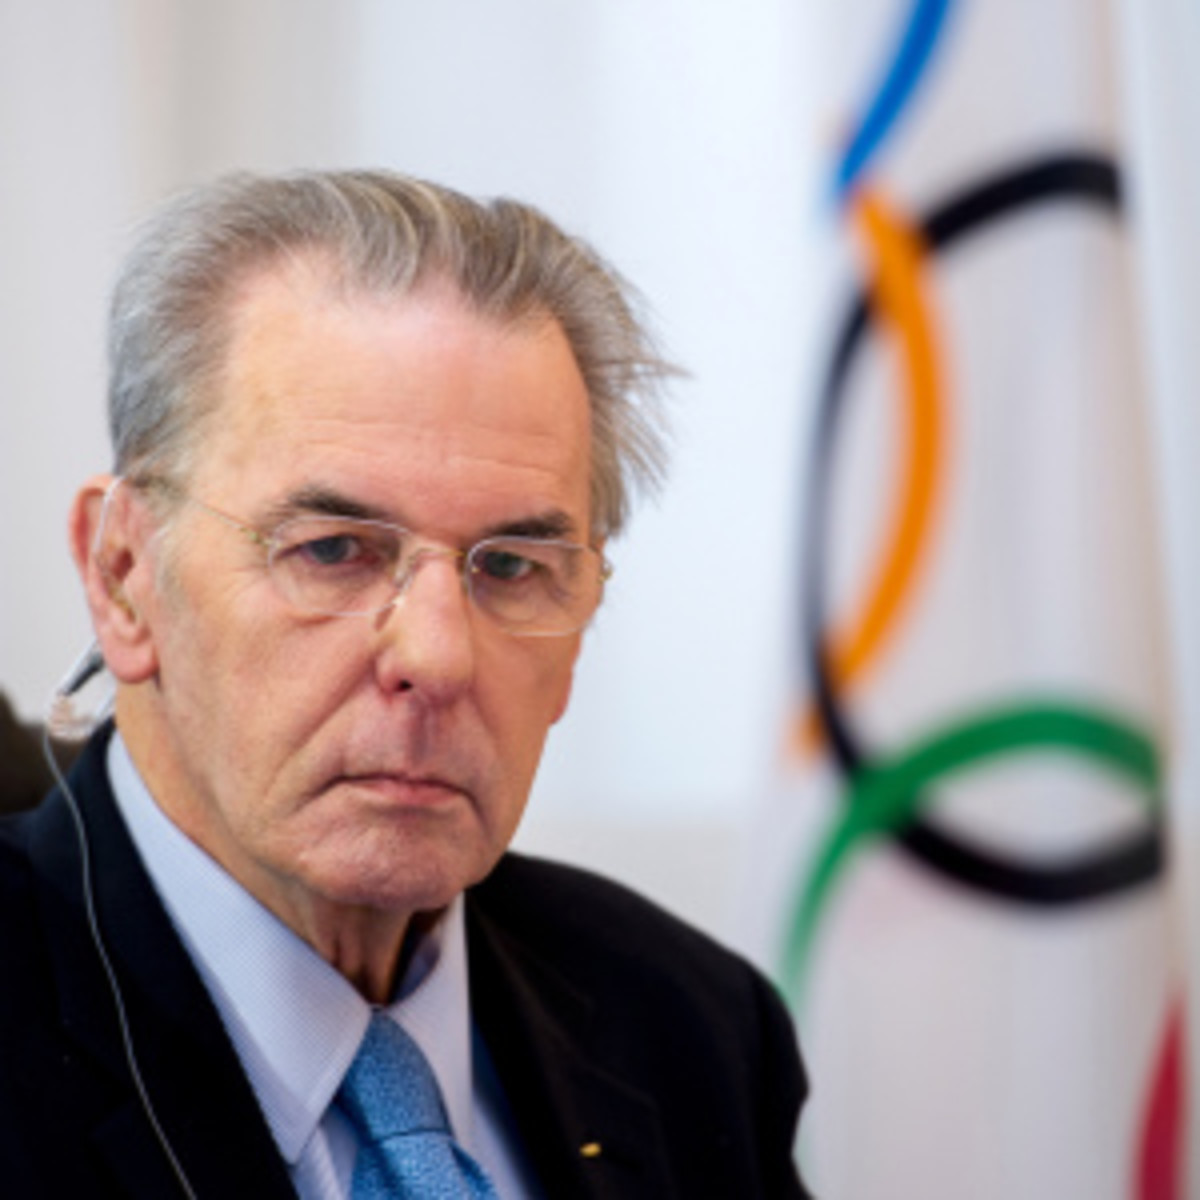 Jacques Rogge will meet with wrestling officials to discuss ways to keep the sport in the Olympics. (Harold Cunningham/Getty Images)